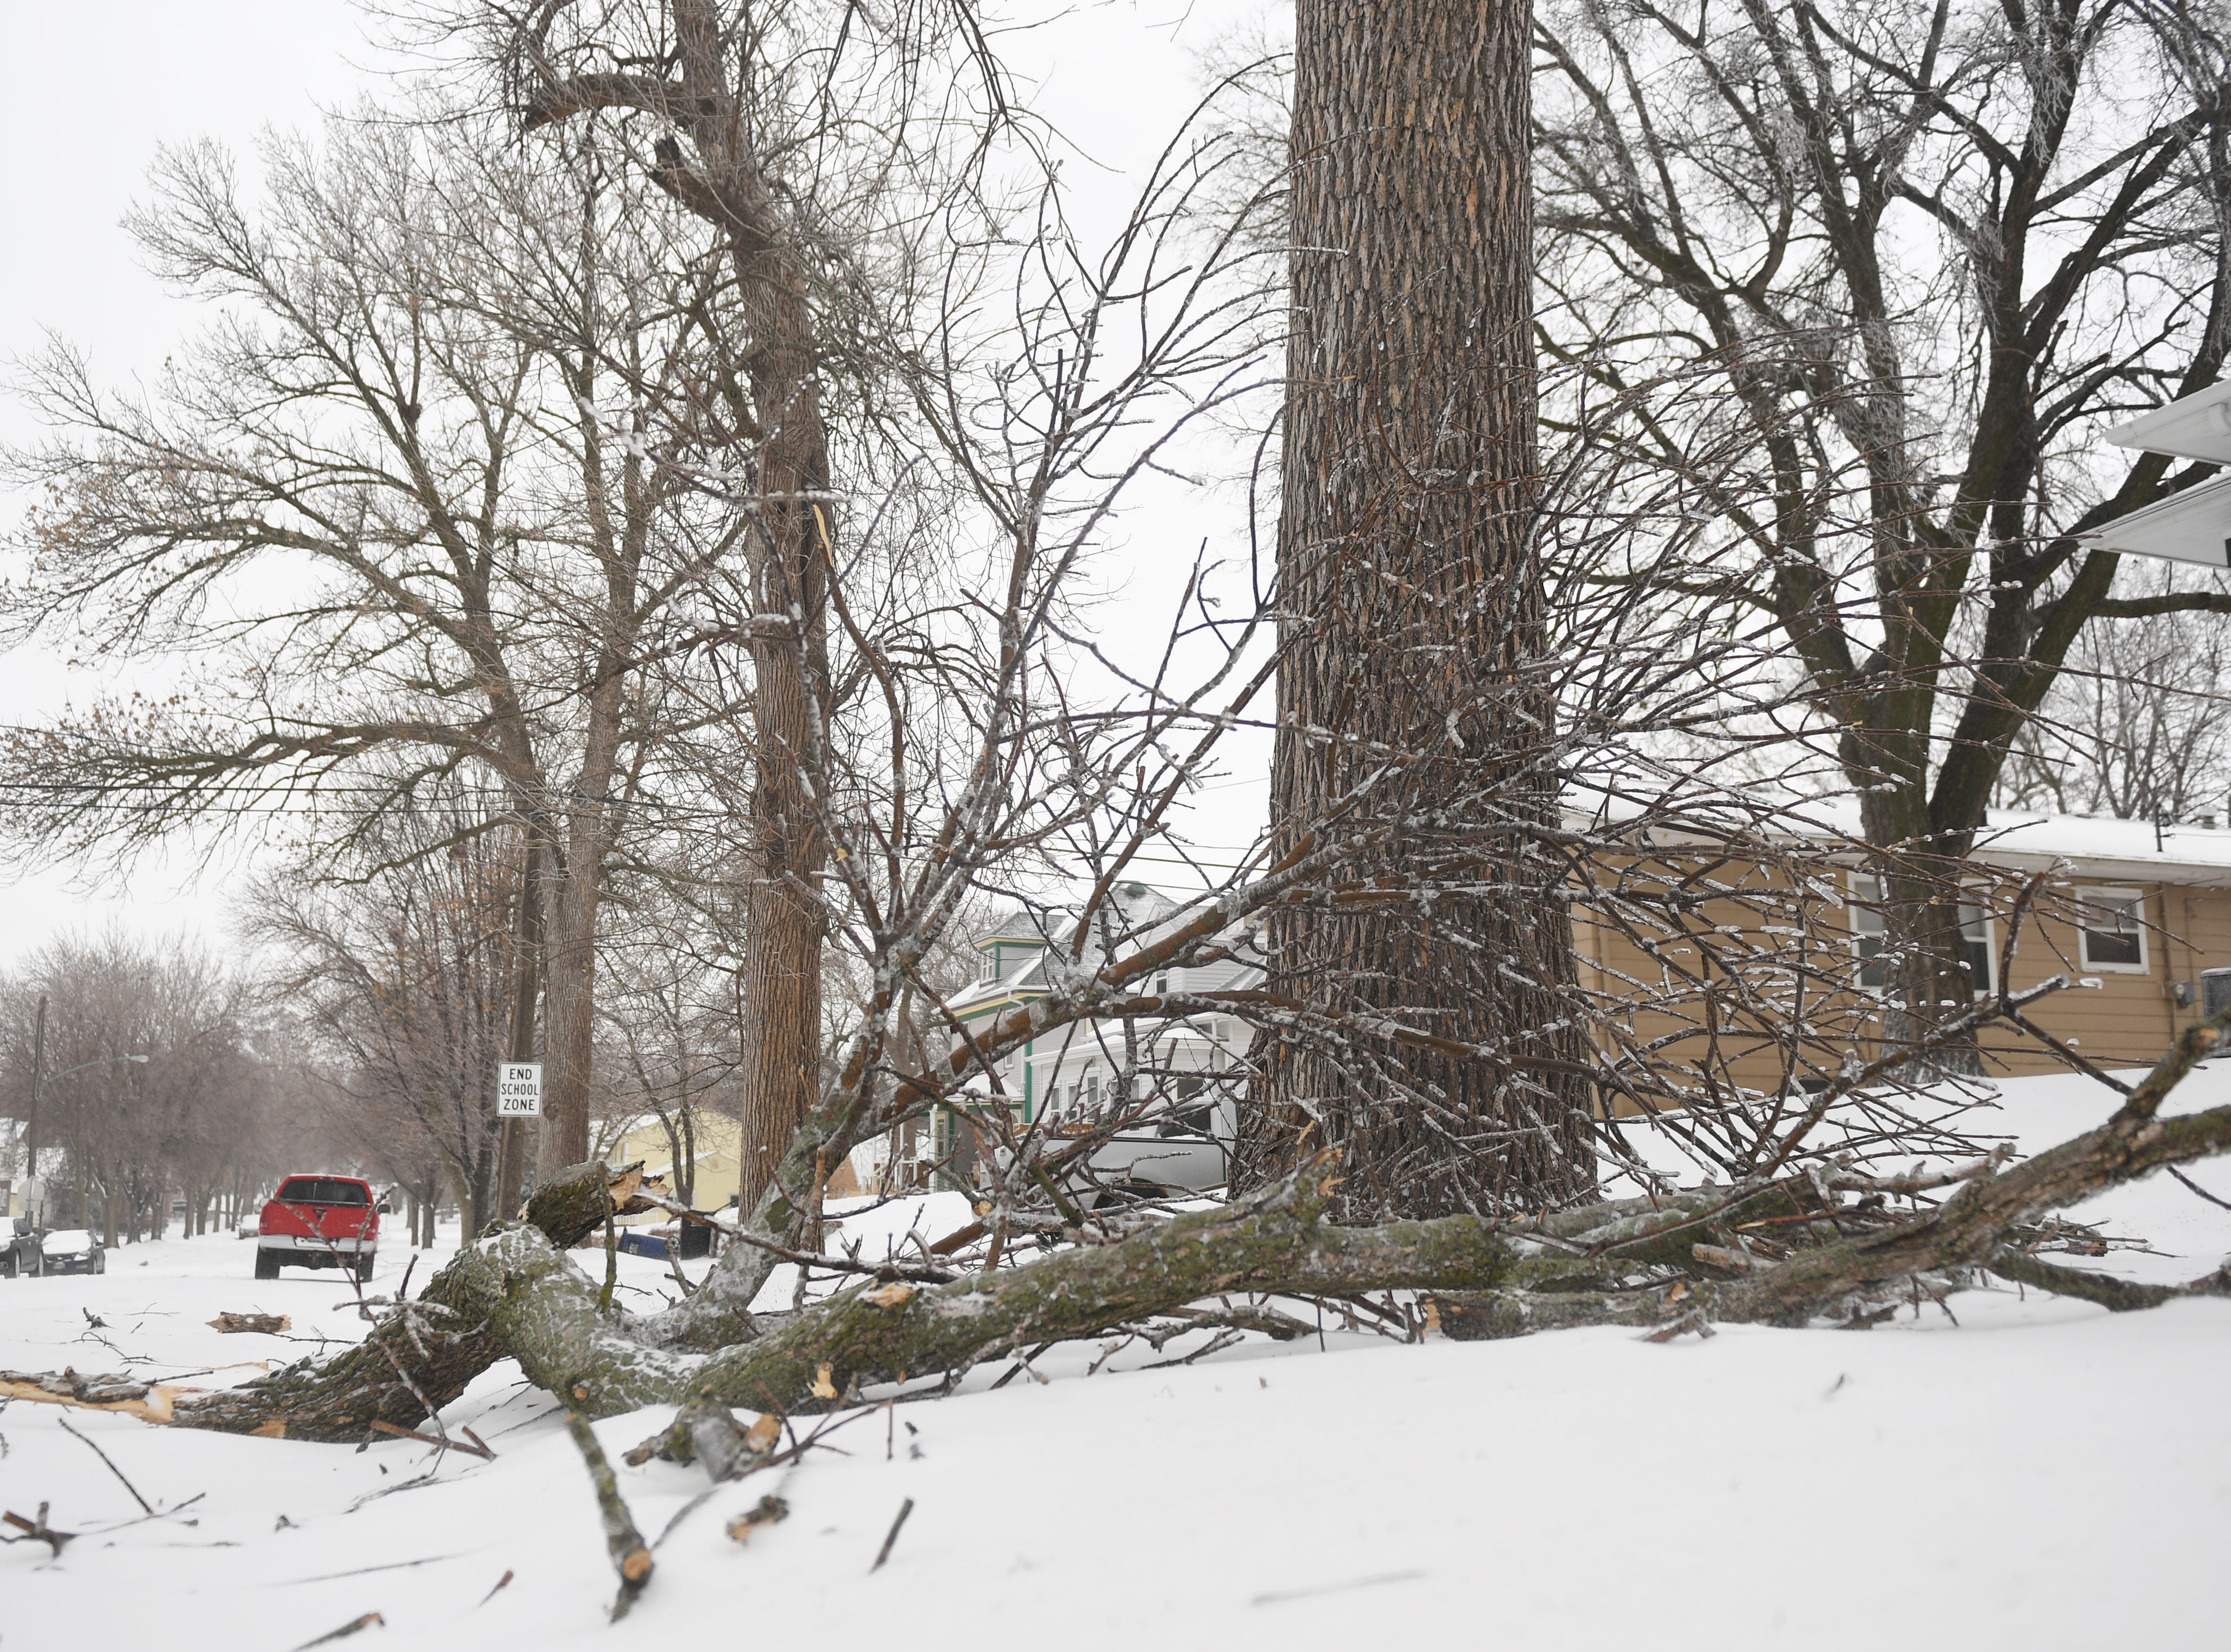 Tree branches fall from trees after icy rain and snow Thursday, April 11, in Sioux Falls.